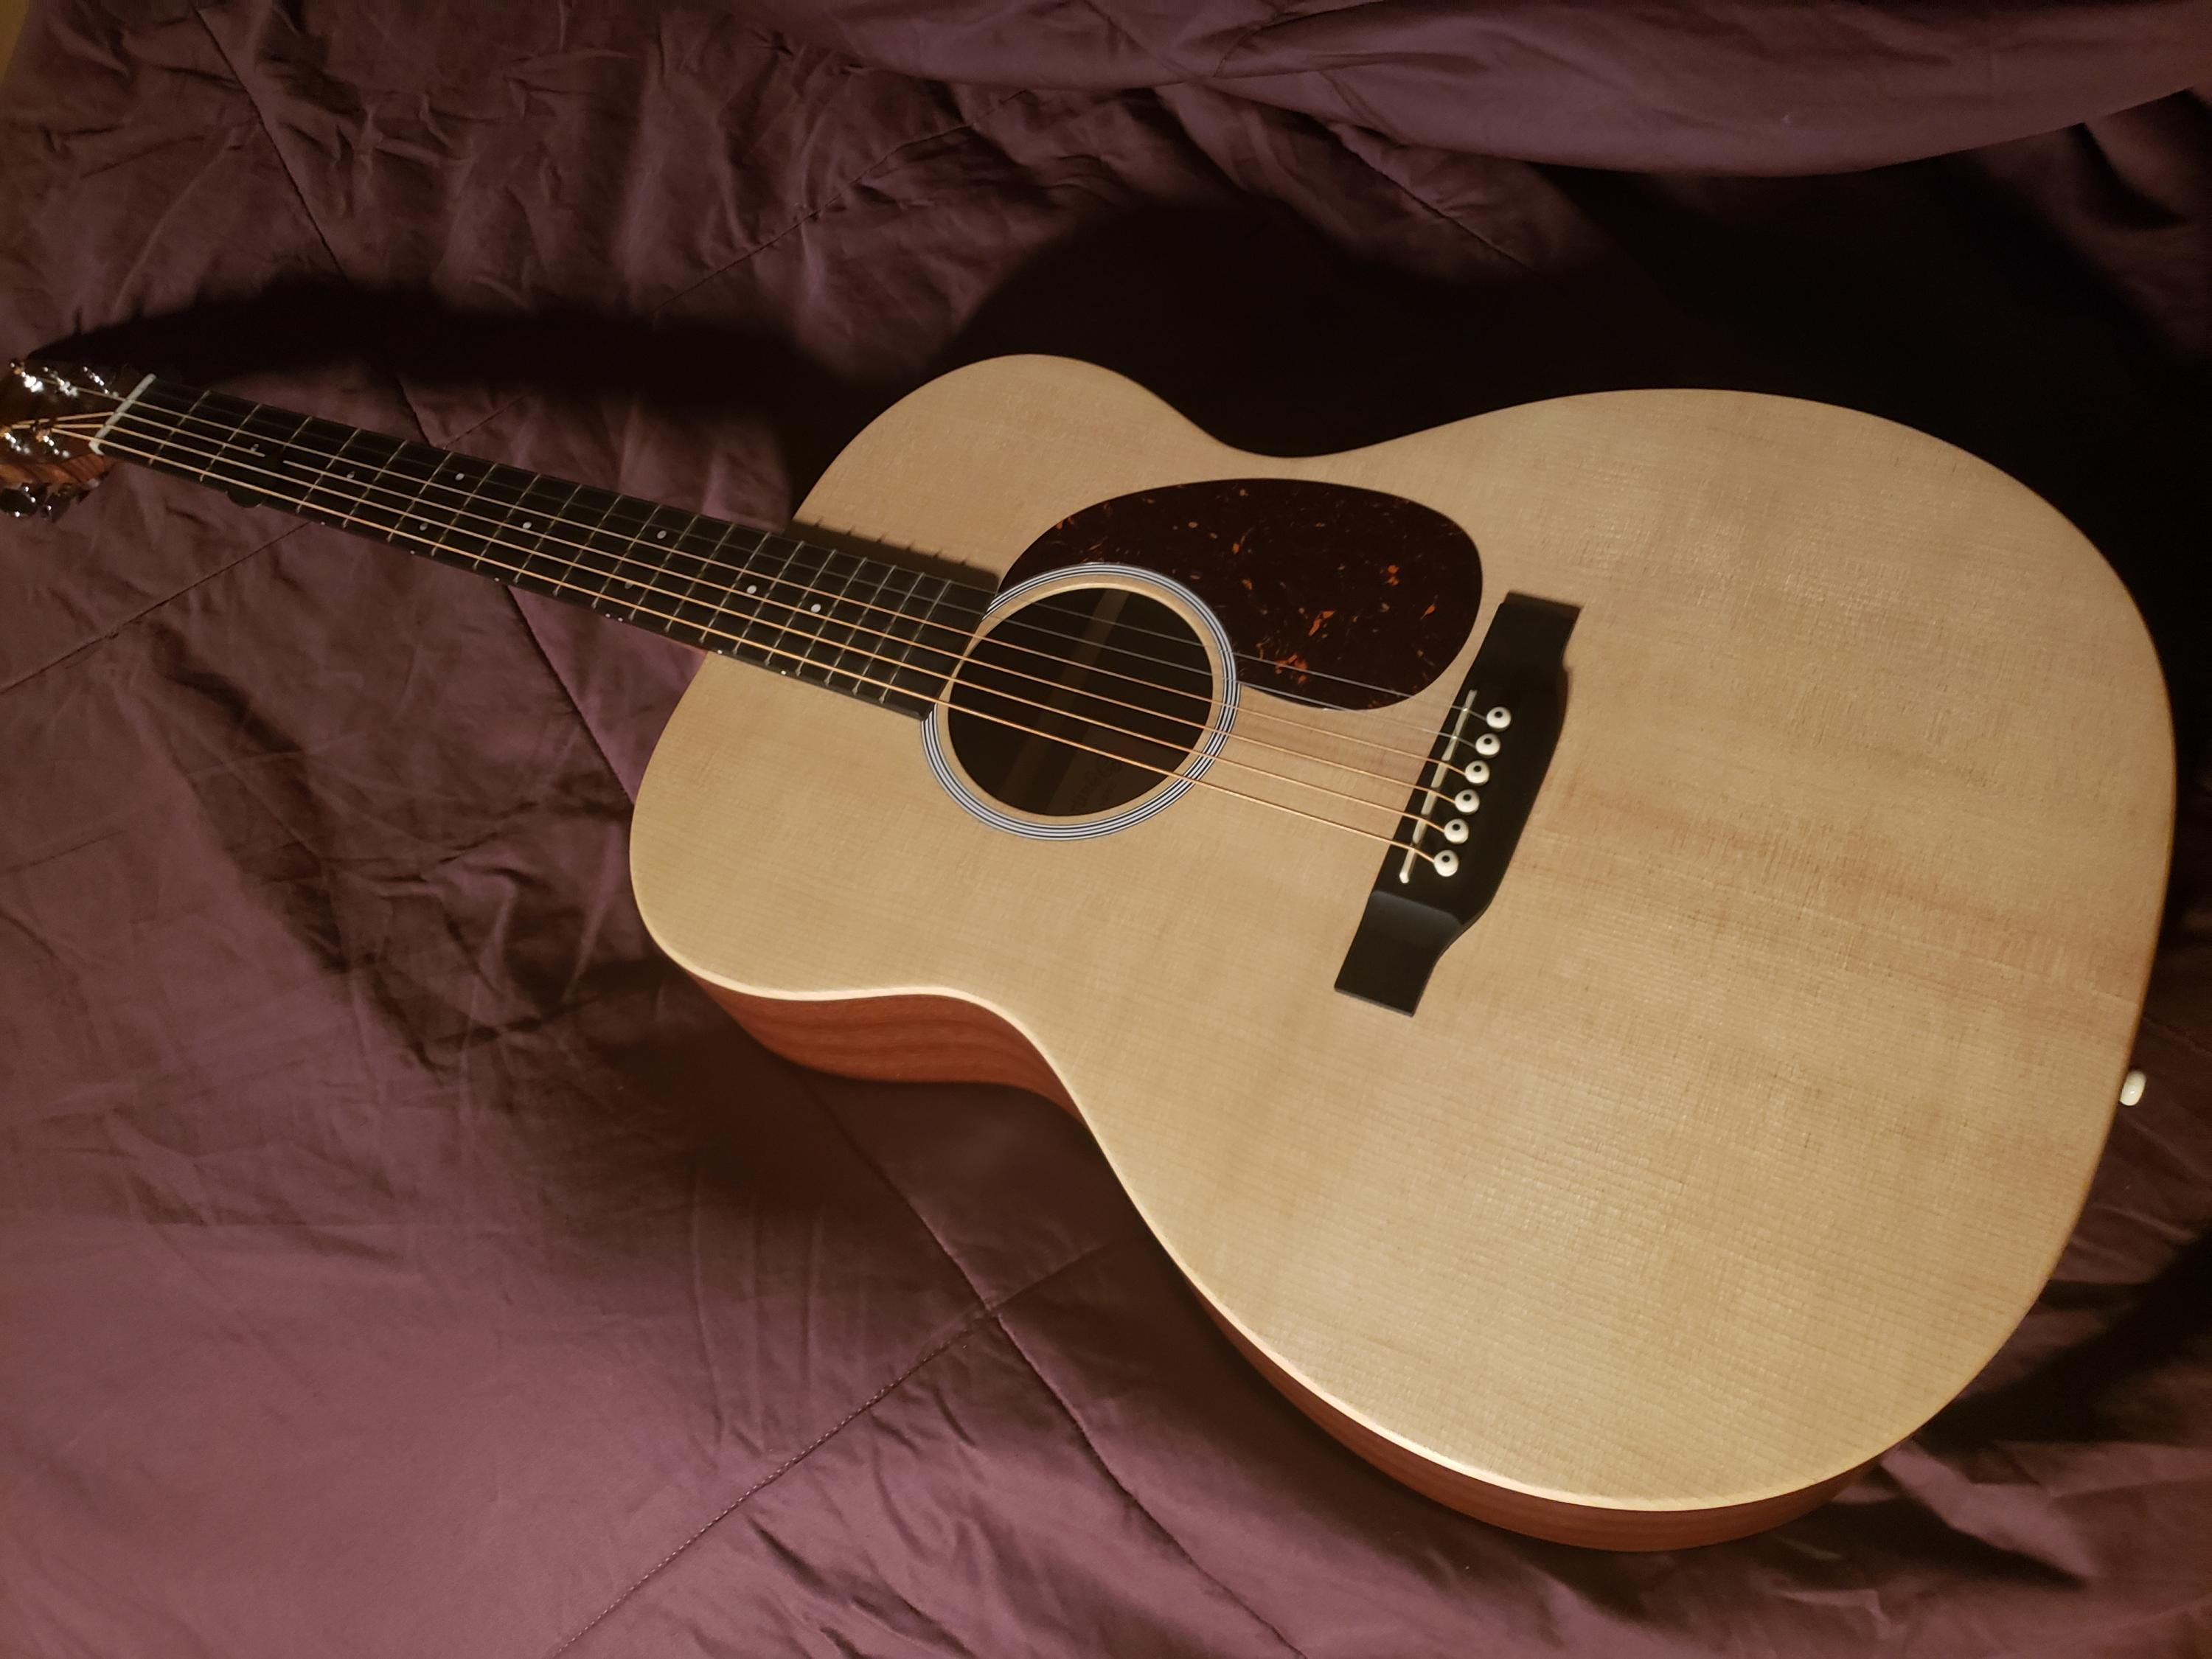 Retail therapy...bought a Martin 000-20210125_070706-jpg